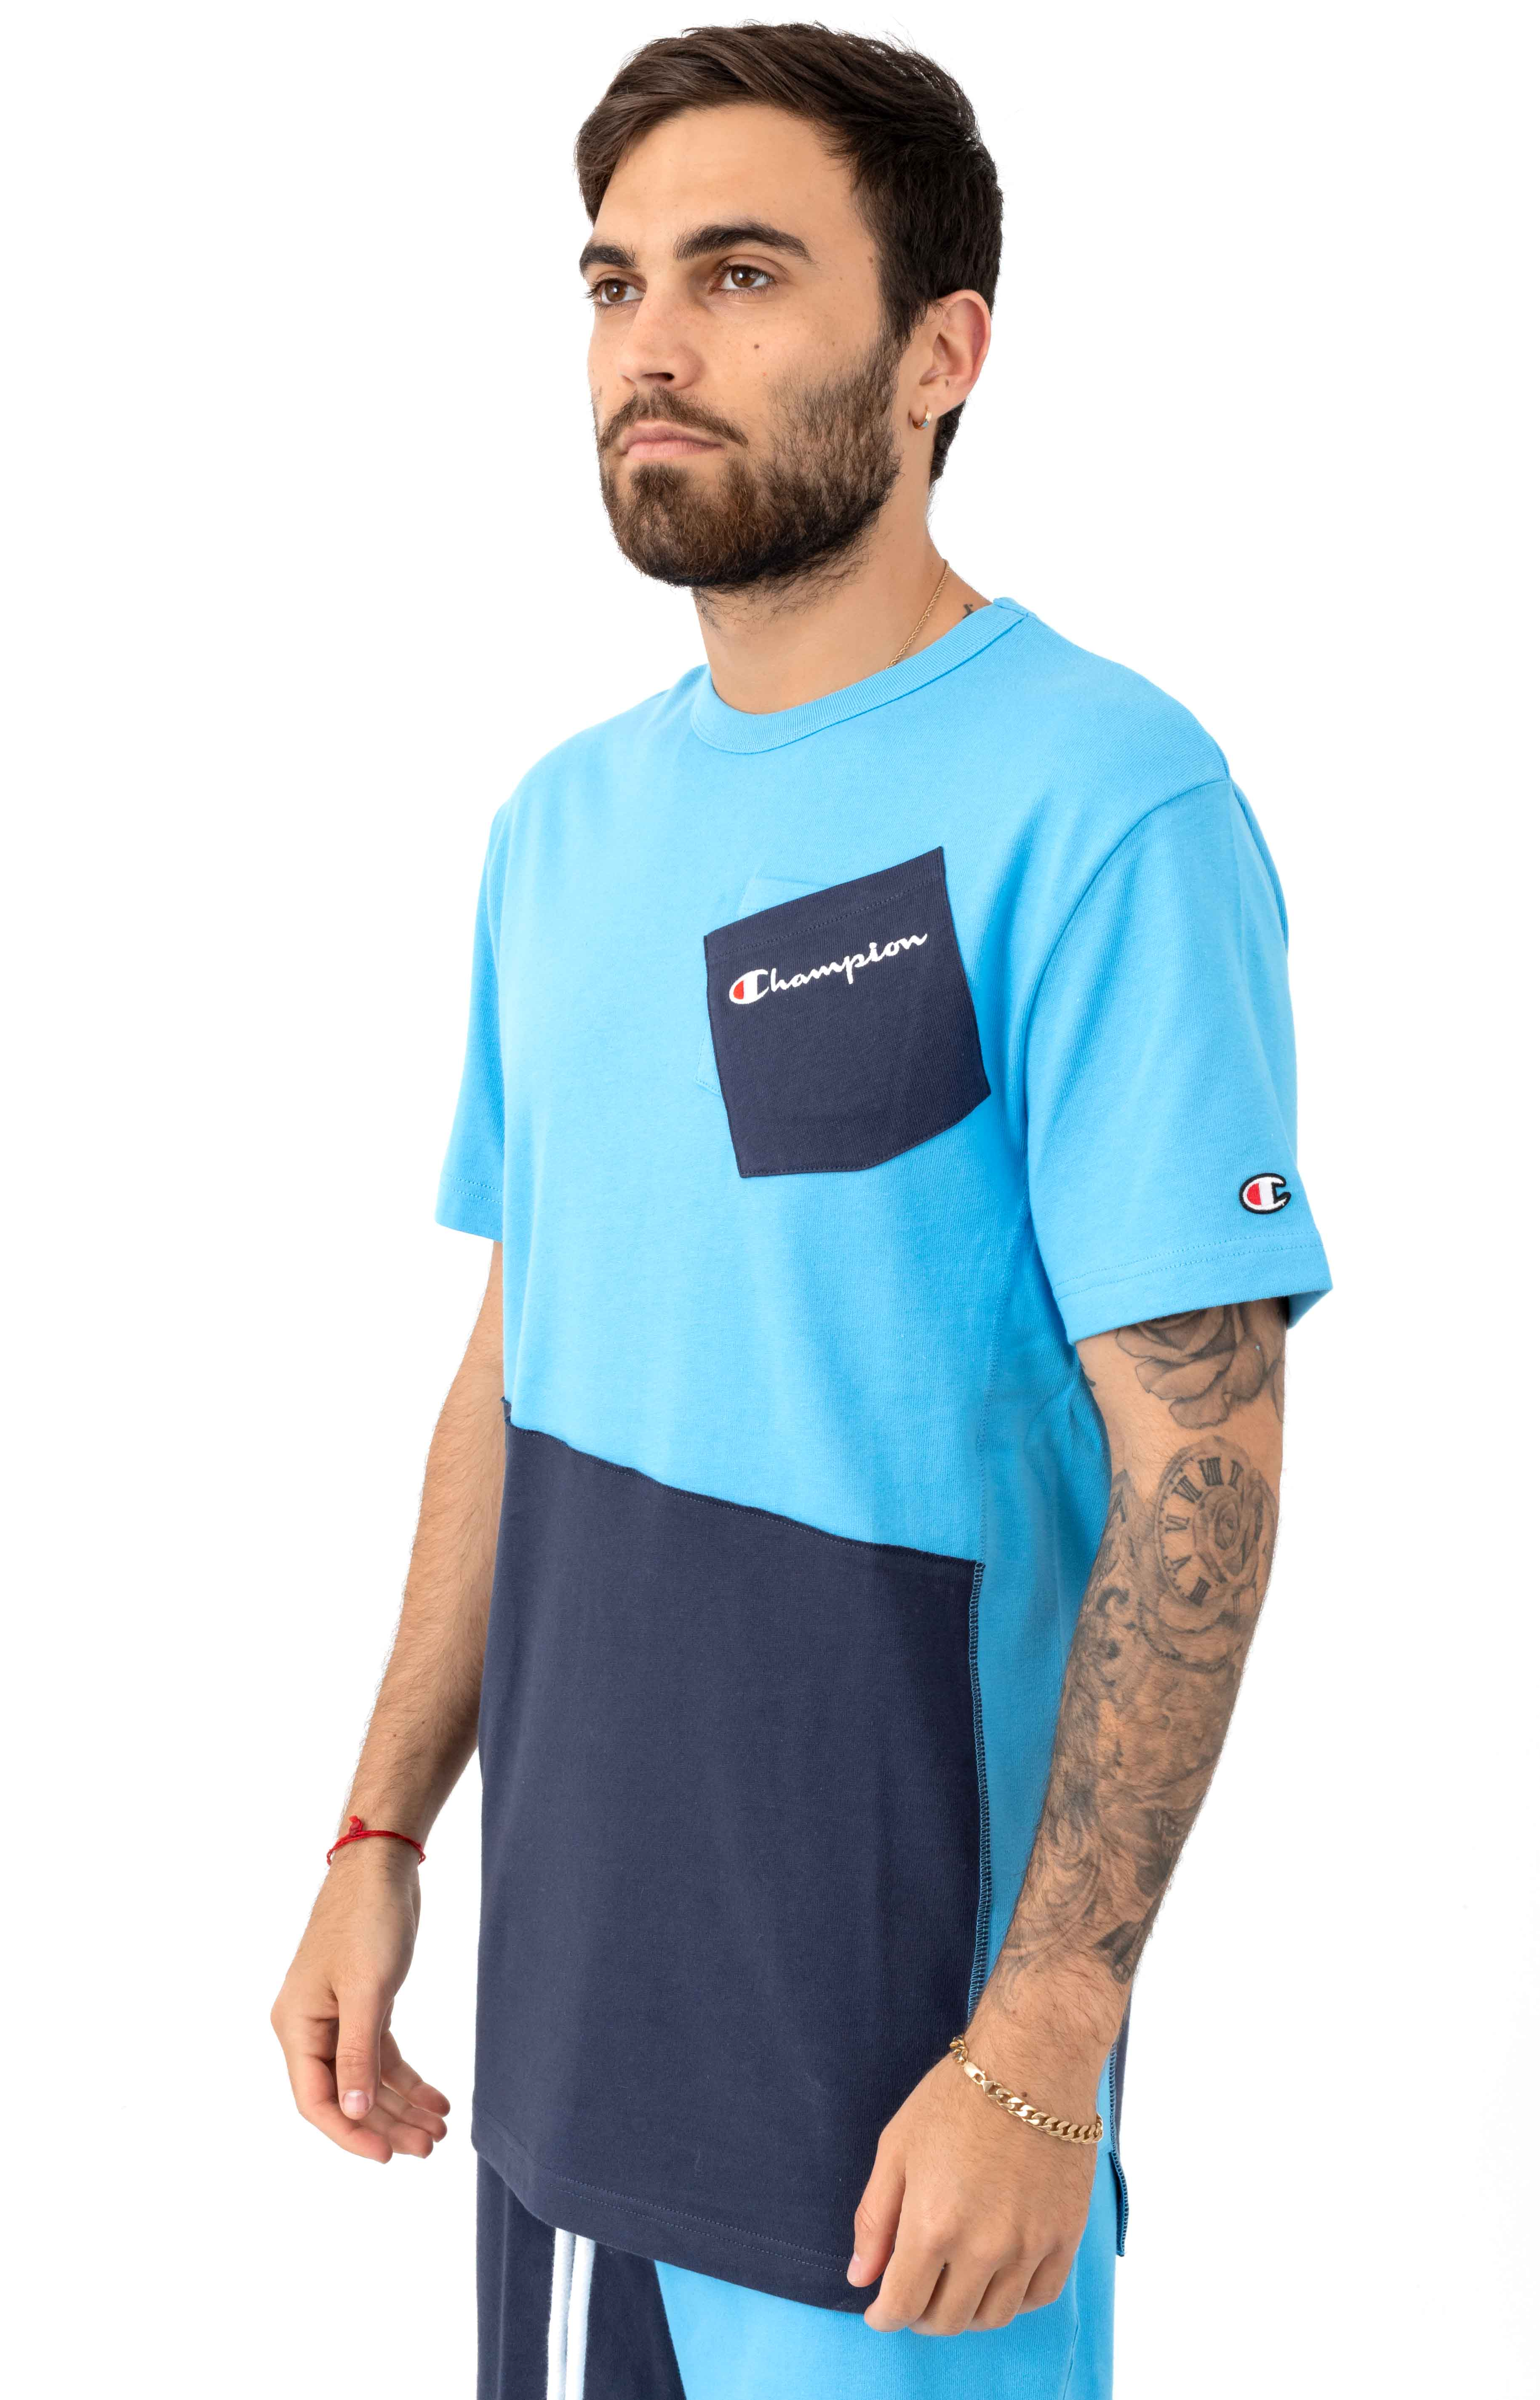 Heritage Shift T-Shirt - Active Blue 2